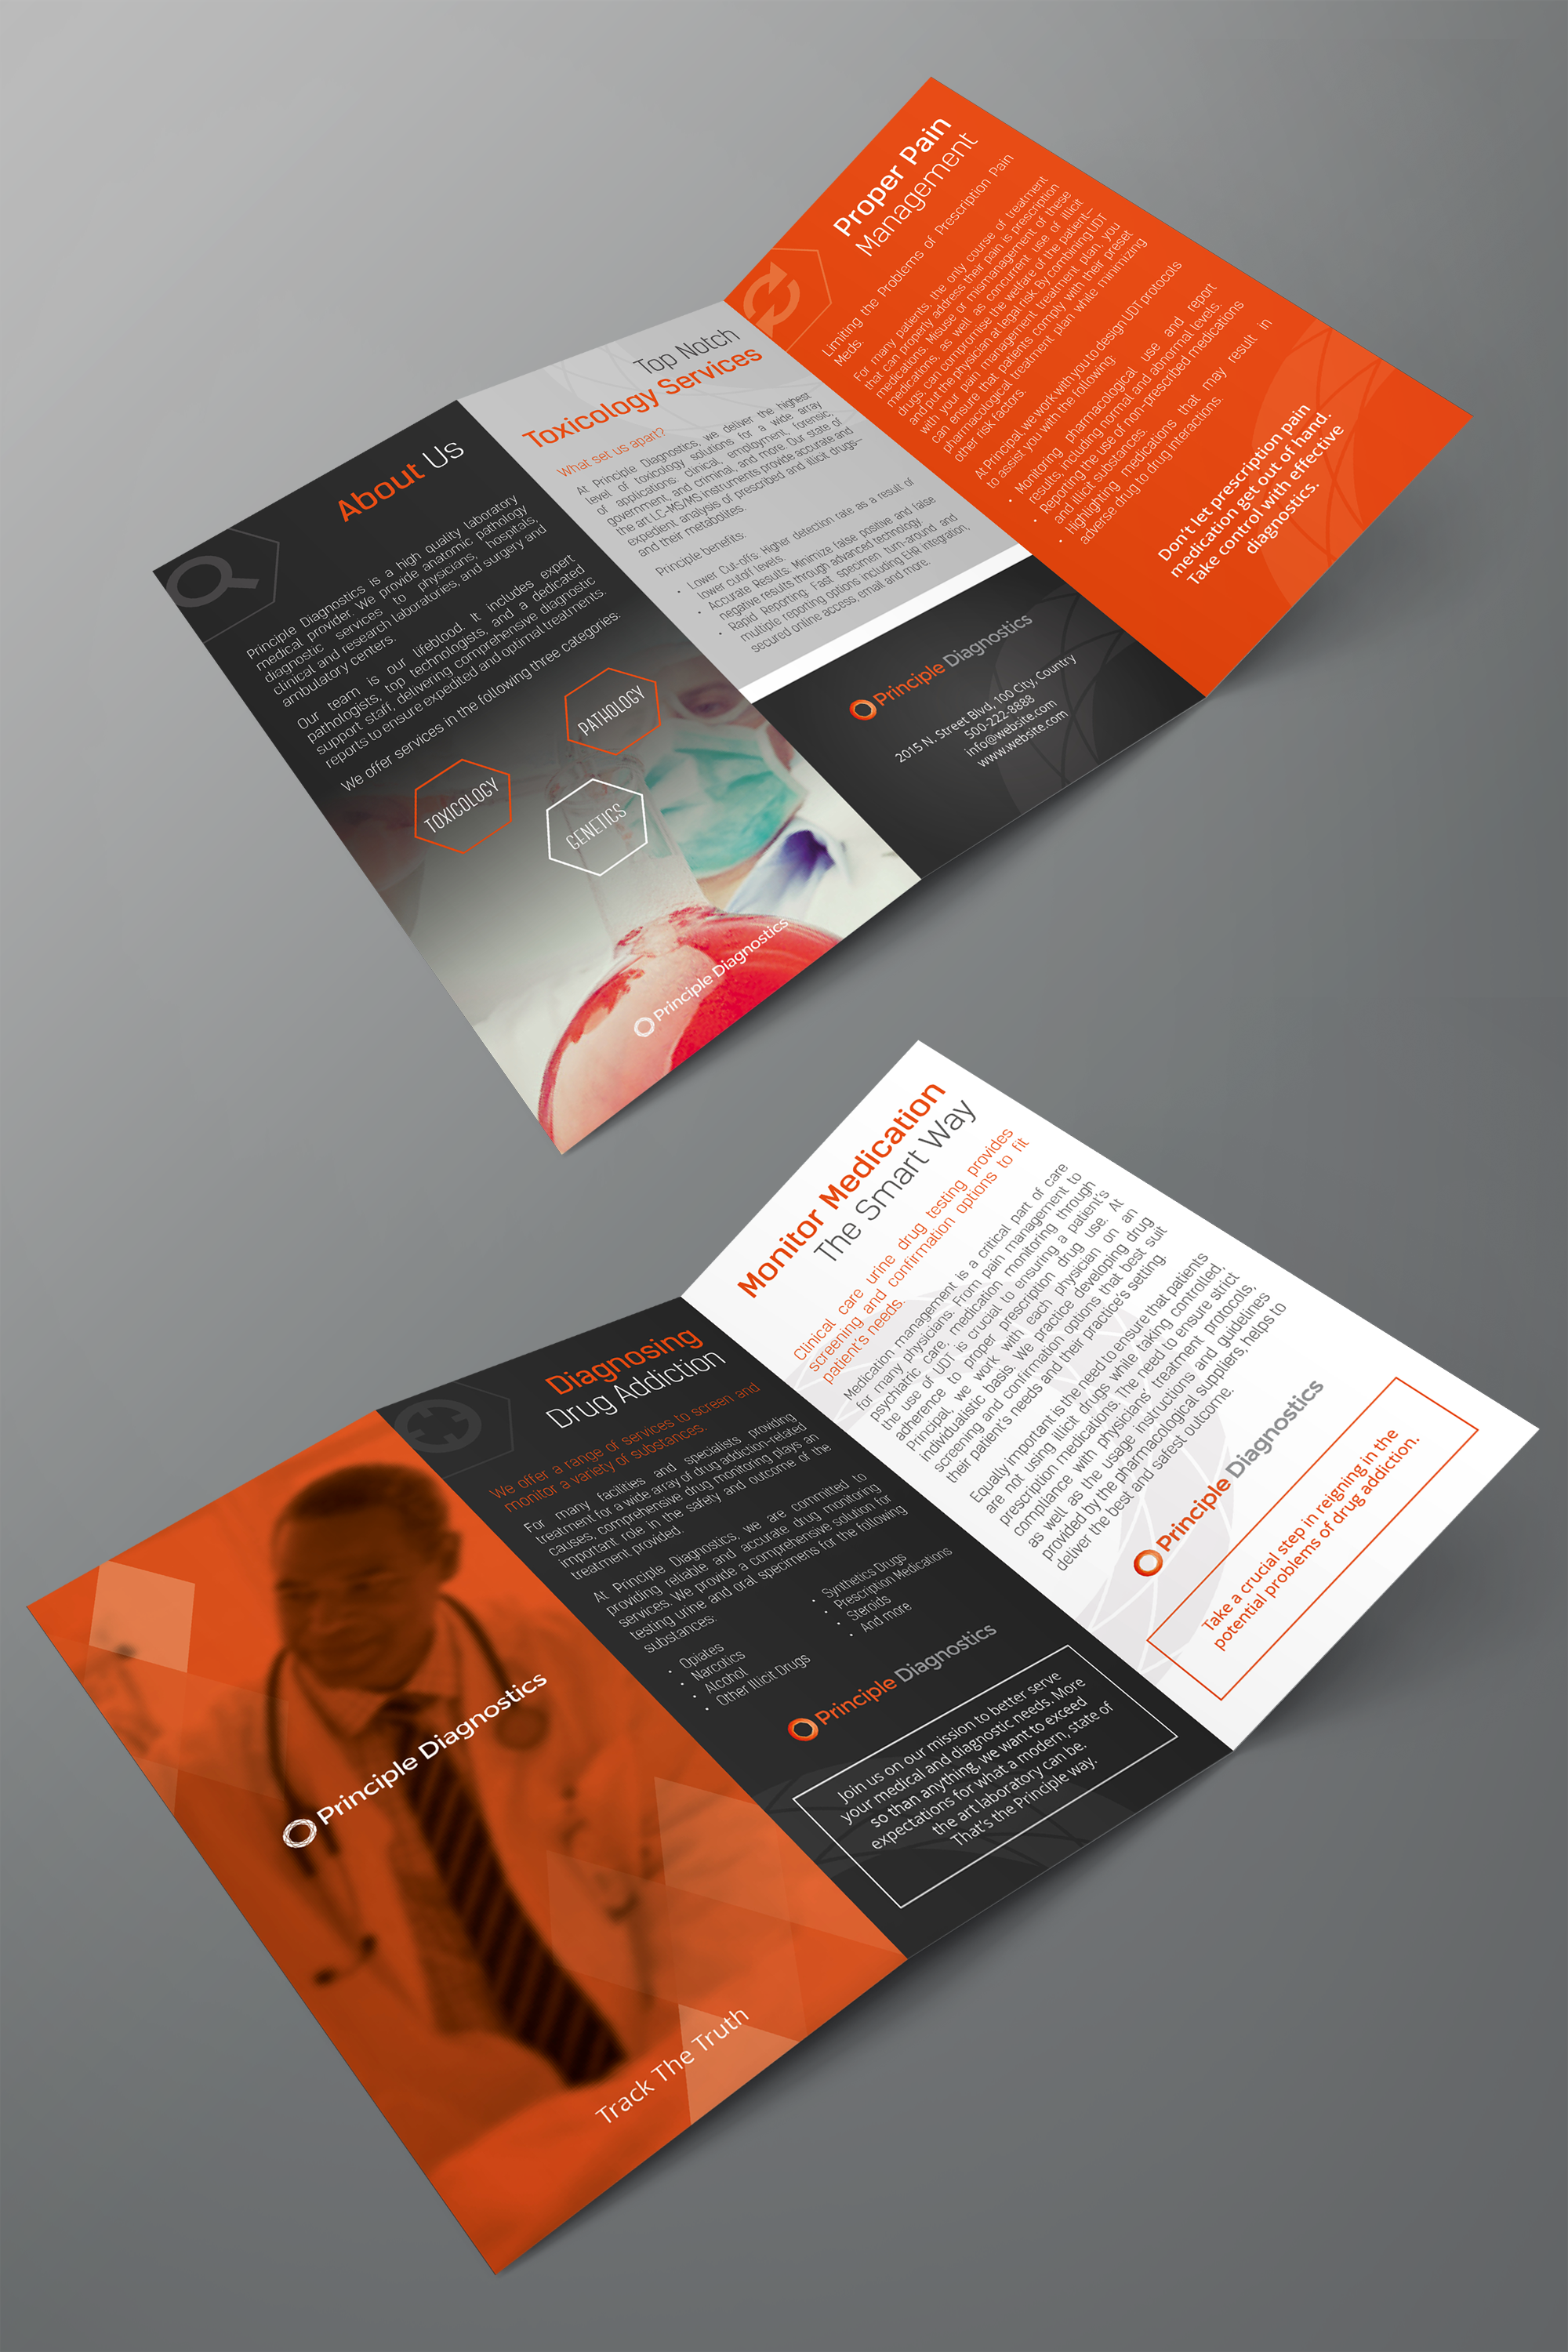 z fold brochure in orange as dominant color and deep gray as accent high